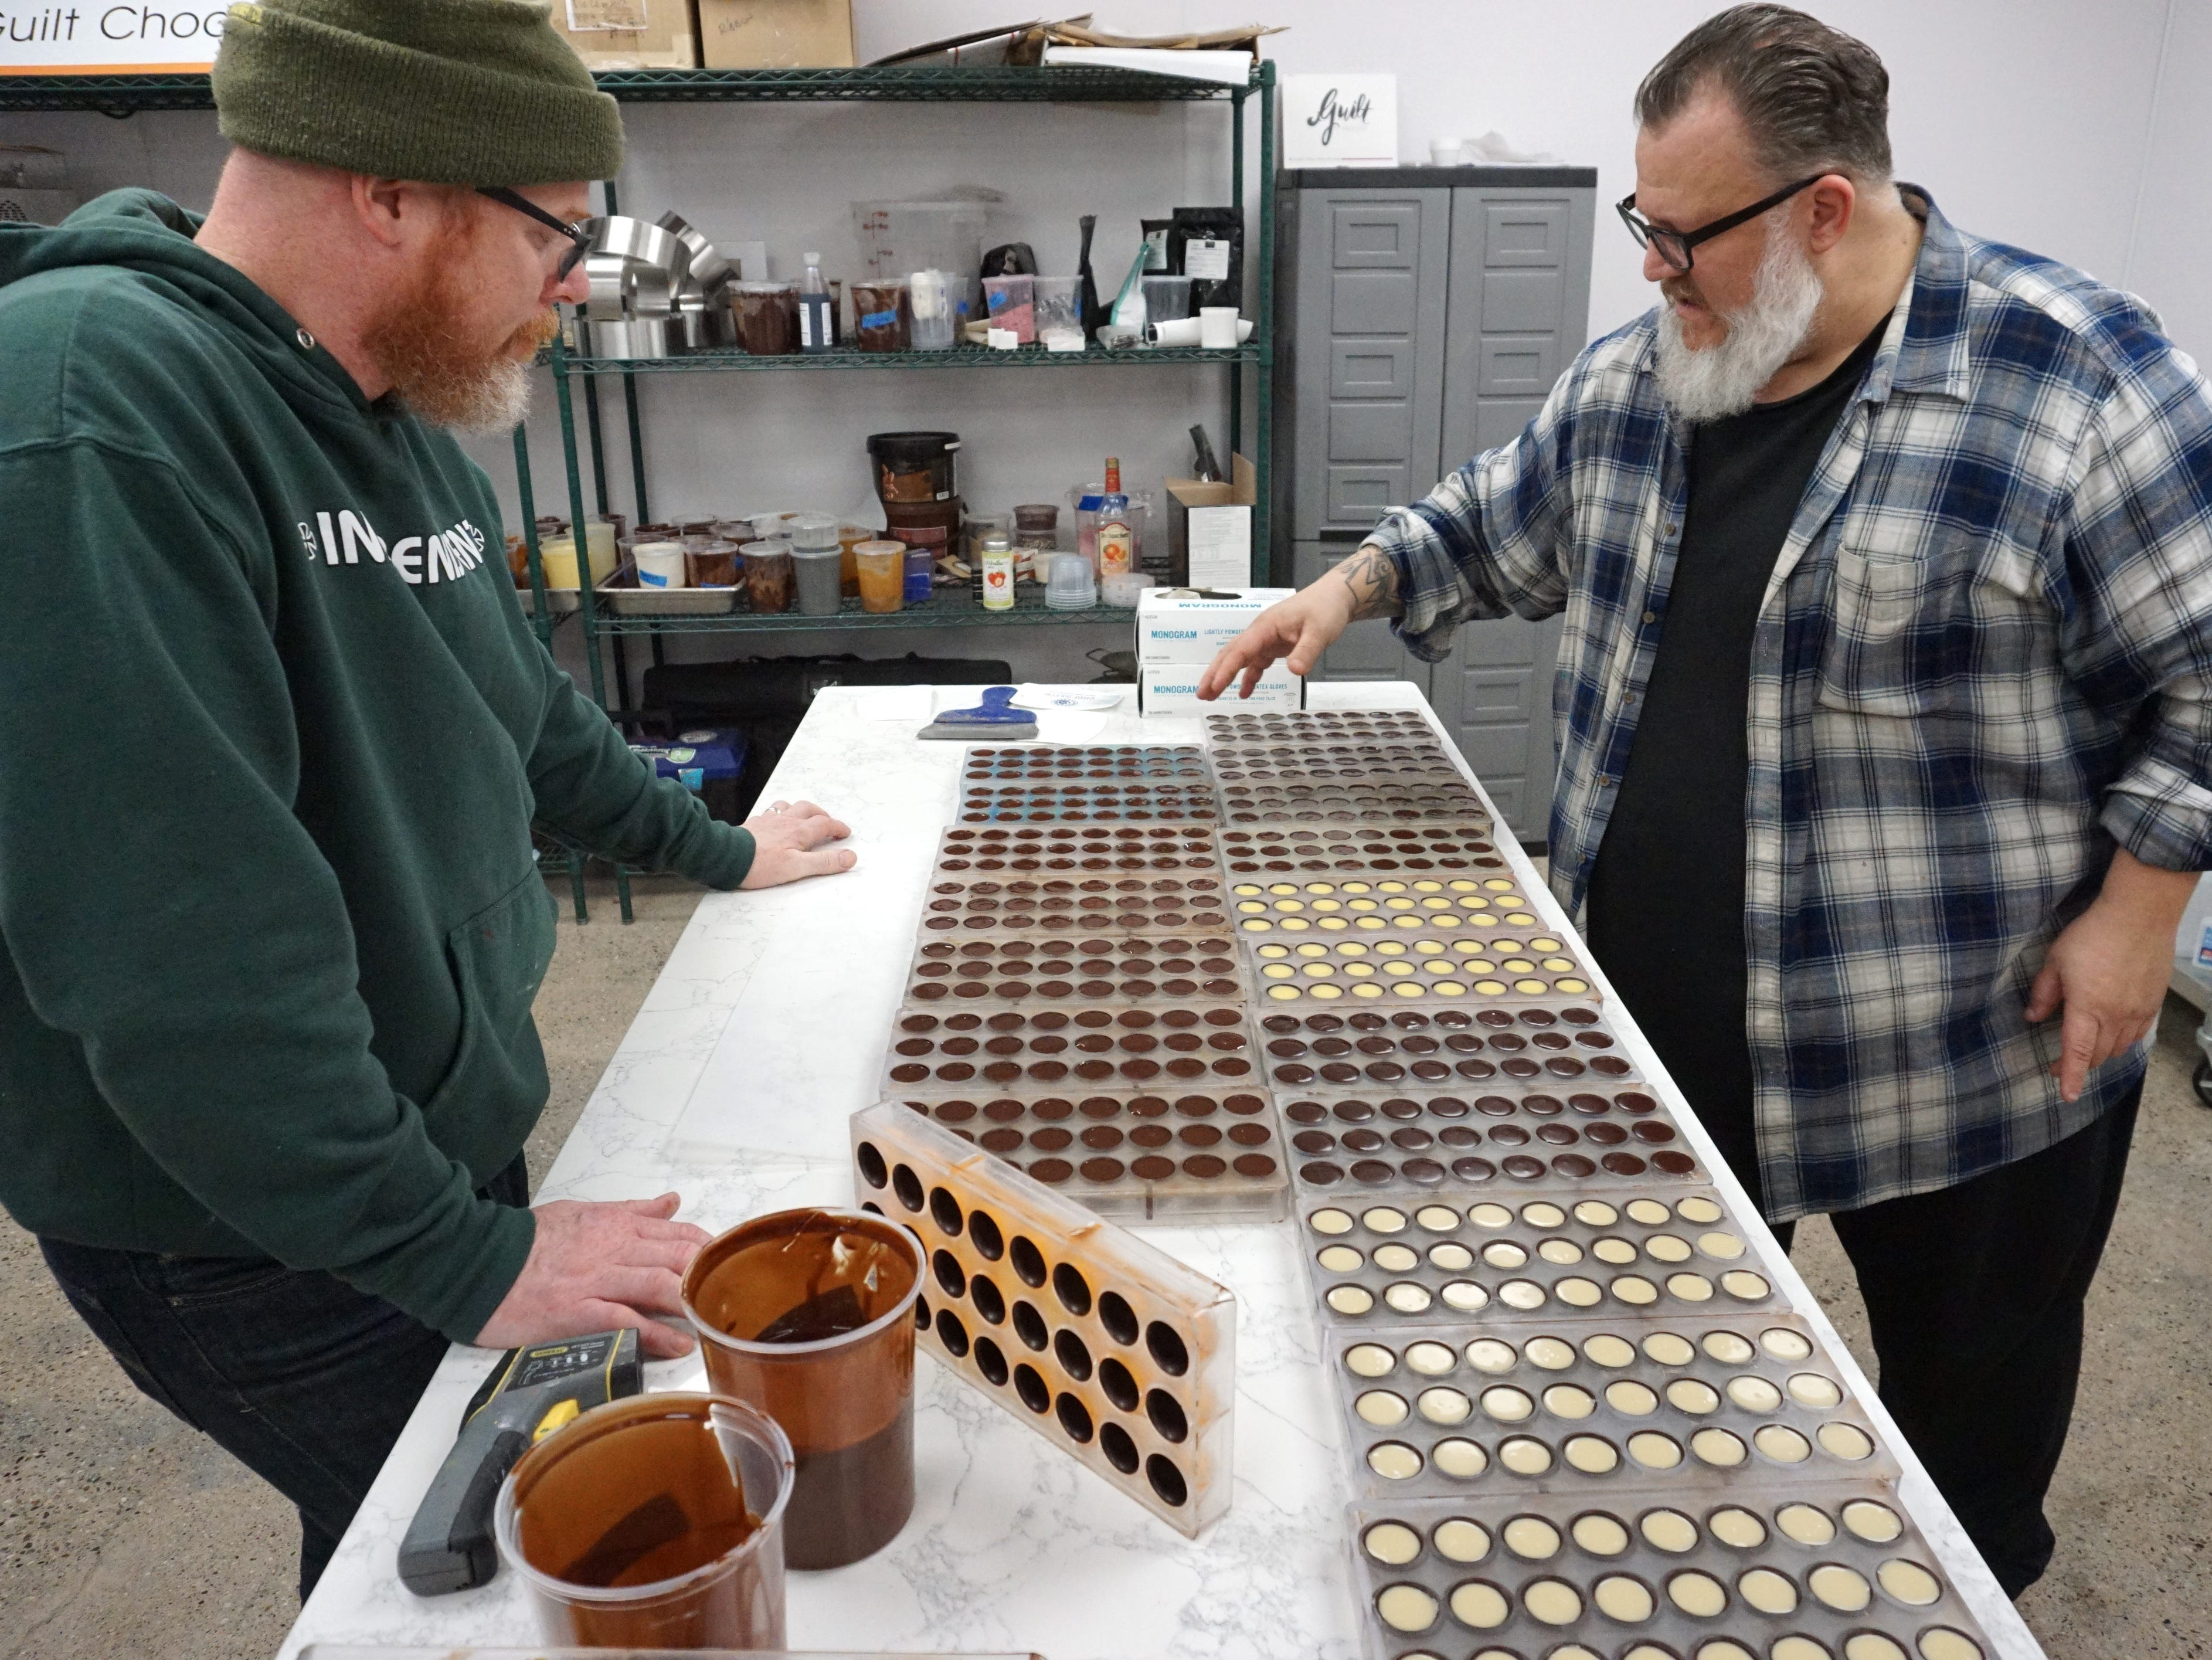 Guilt Chocolates' Scott Breazeale, left, and Joe Nader check out some of their production at their Seven Mile shop.